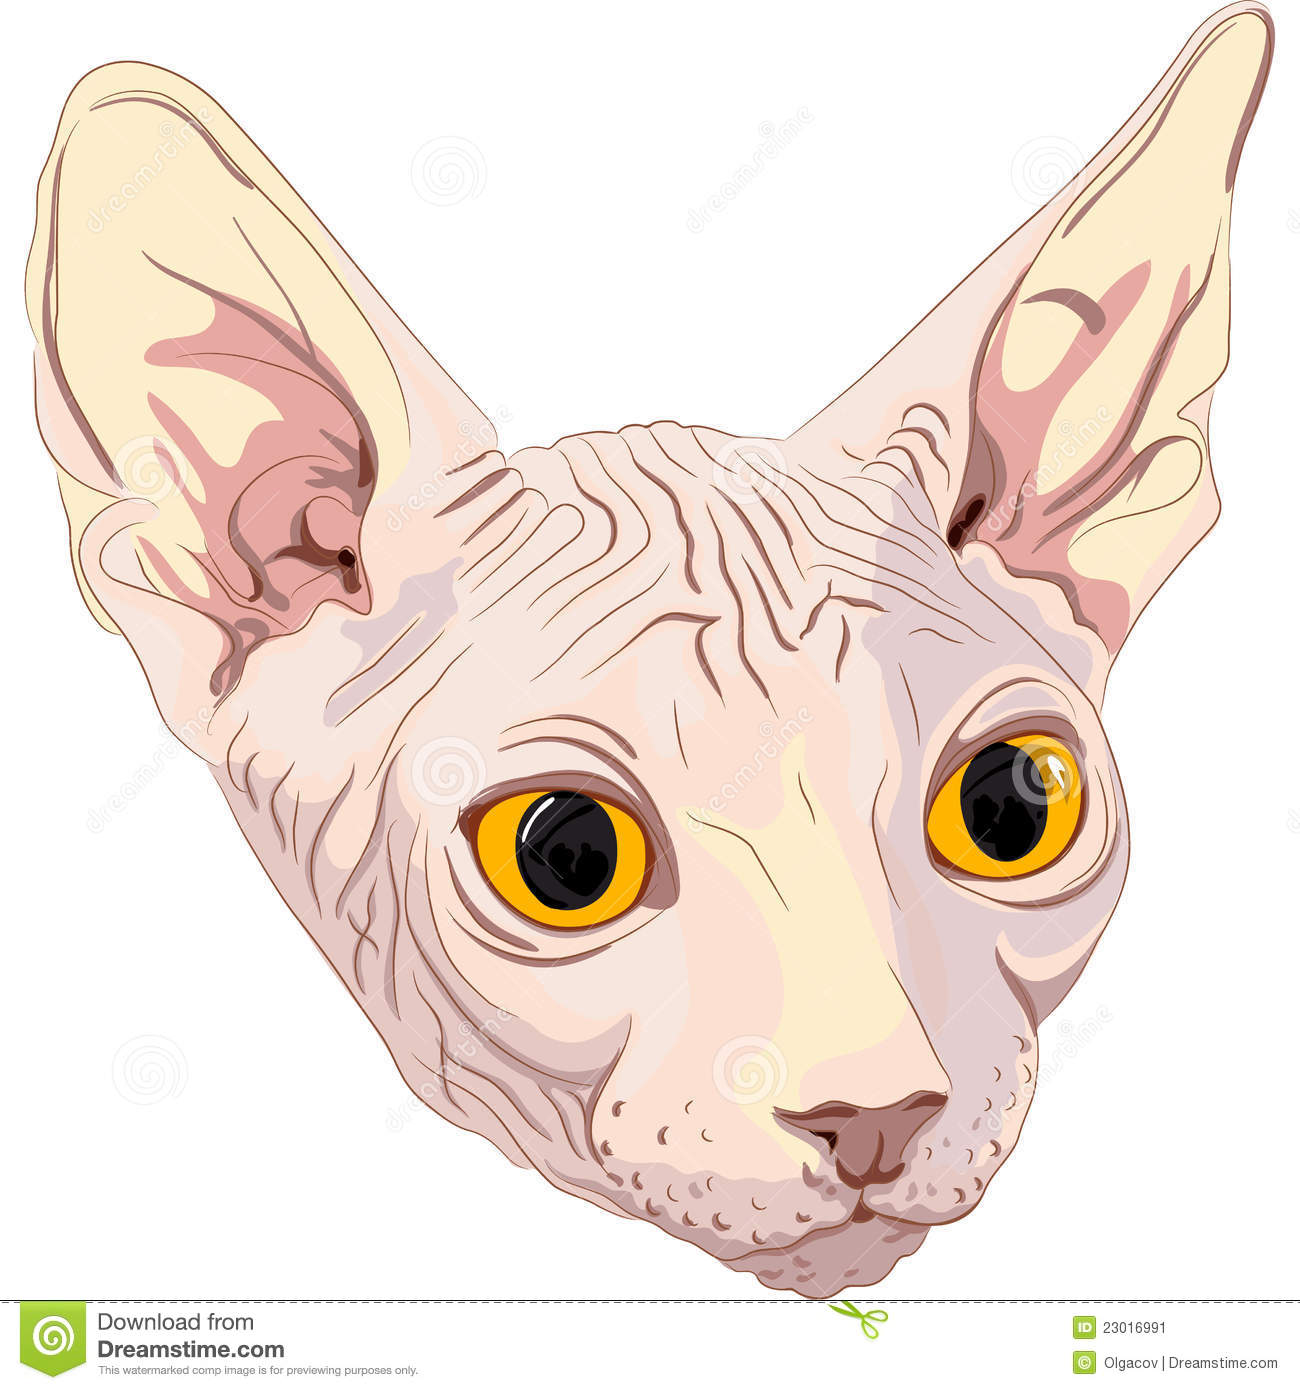 Vector Sketch The Cat Breed Sphynx Stock Image - Image 23016991